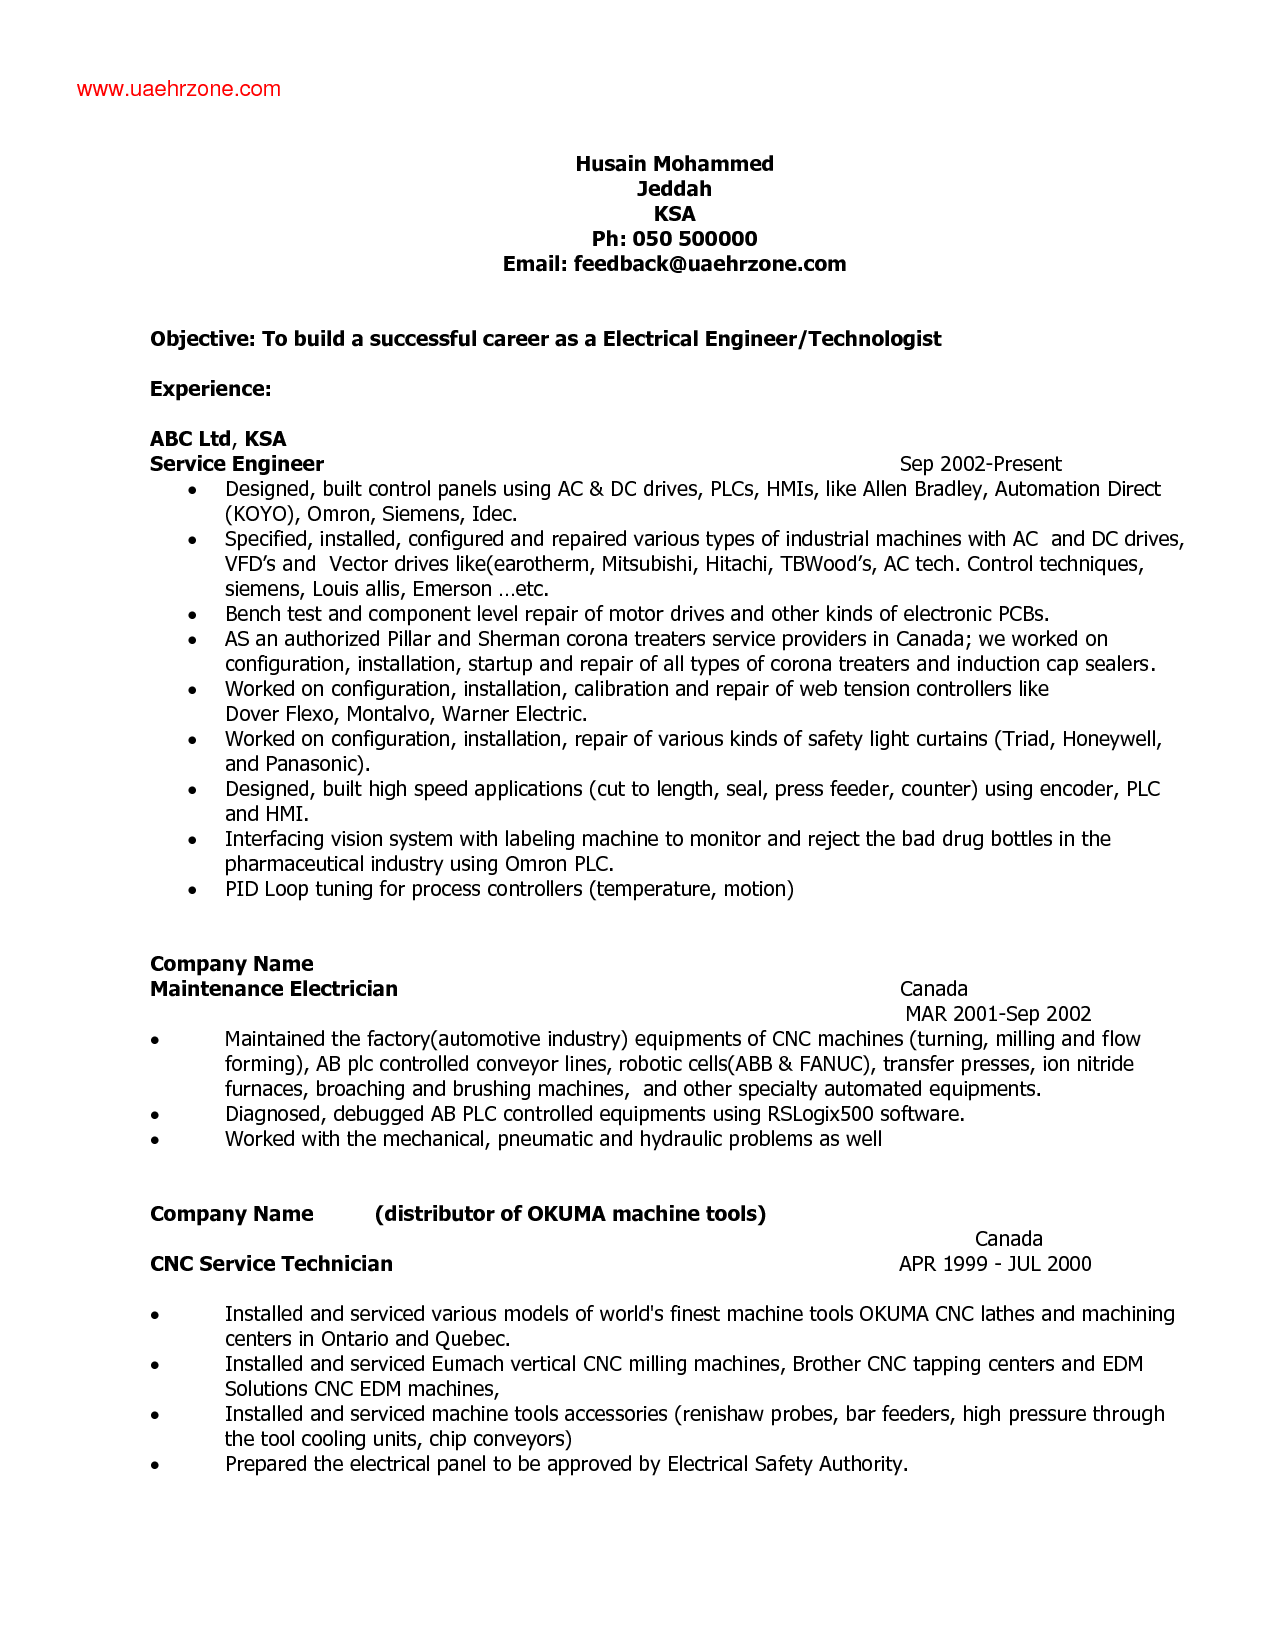 electrical engineer resume objectives resume samples - Ideal ...